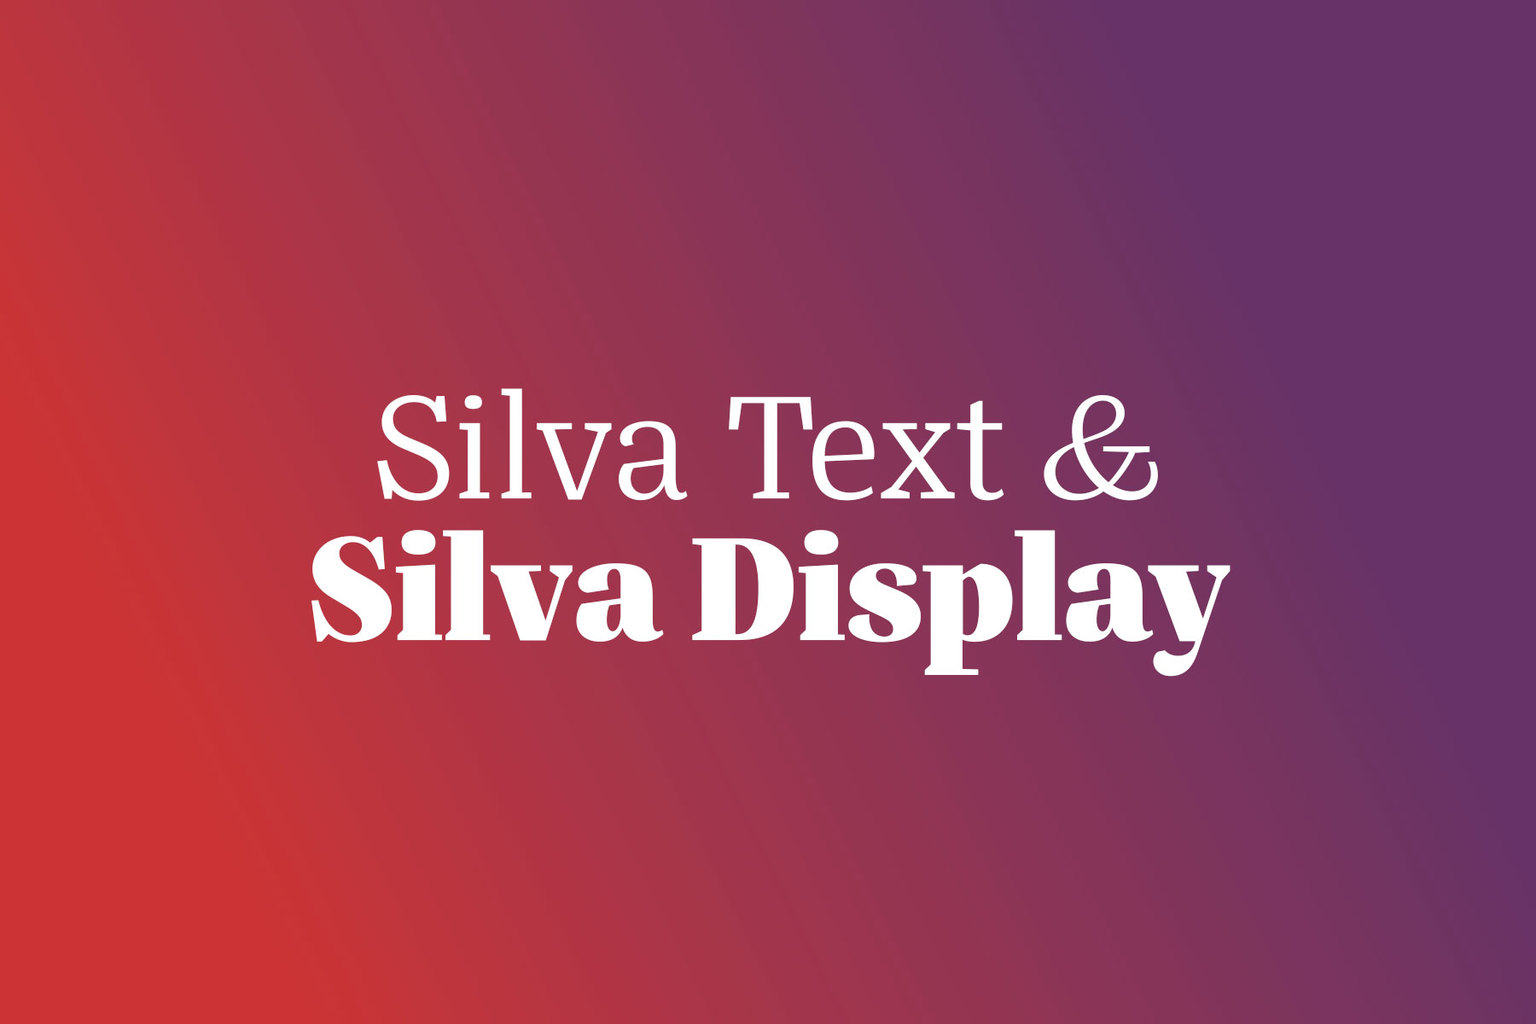 Village: Silva Display